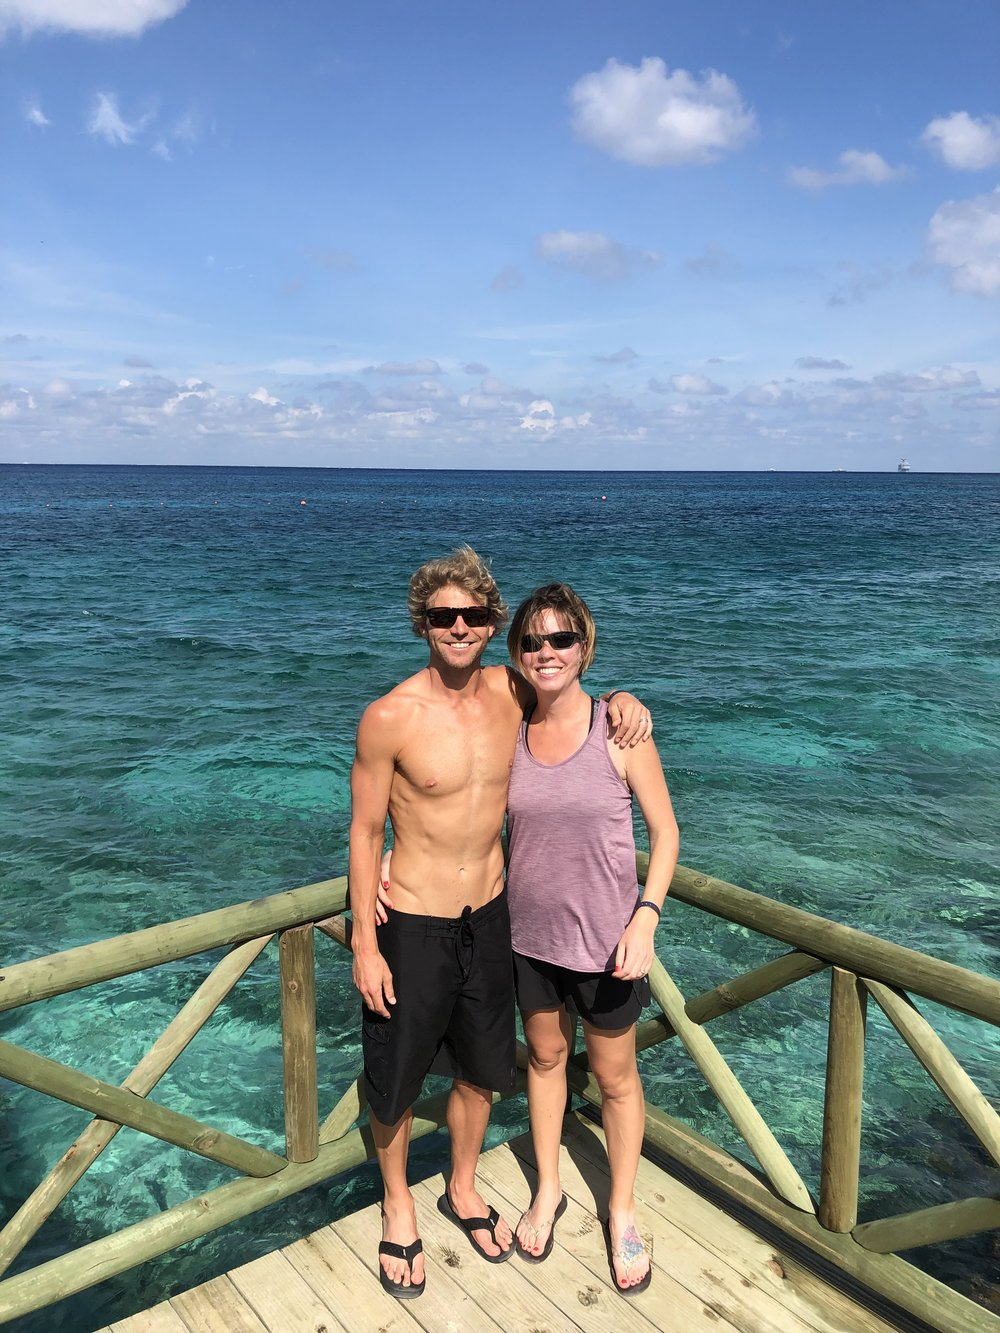 Final hours in Cozumel. Cozumel is known for its diving and snorkeling and with the water in the background you can clearly see why.